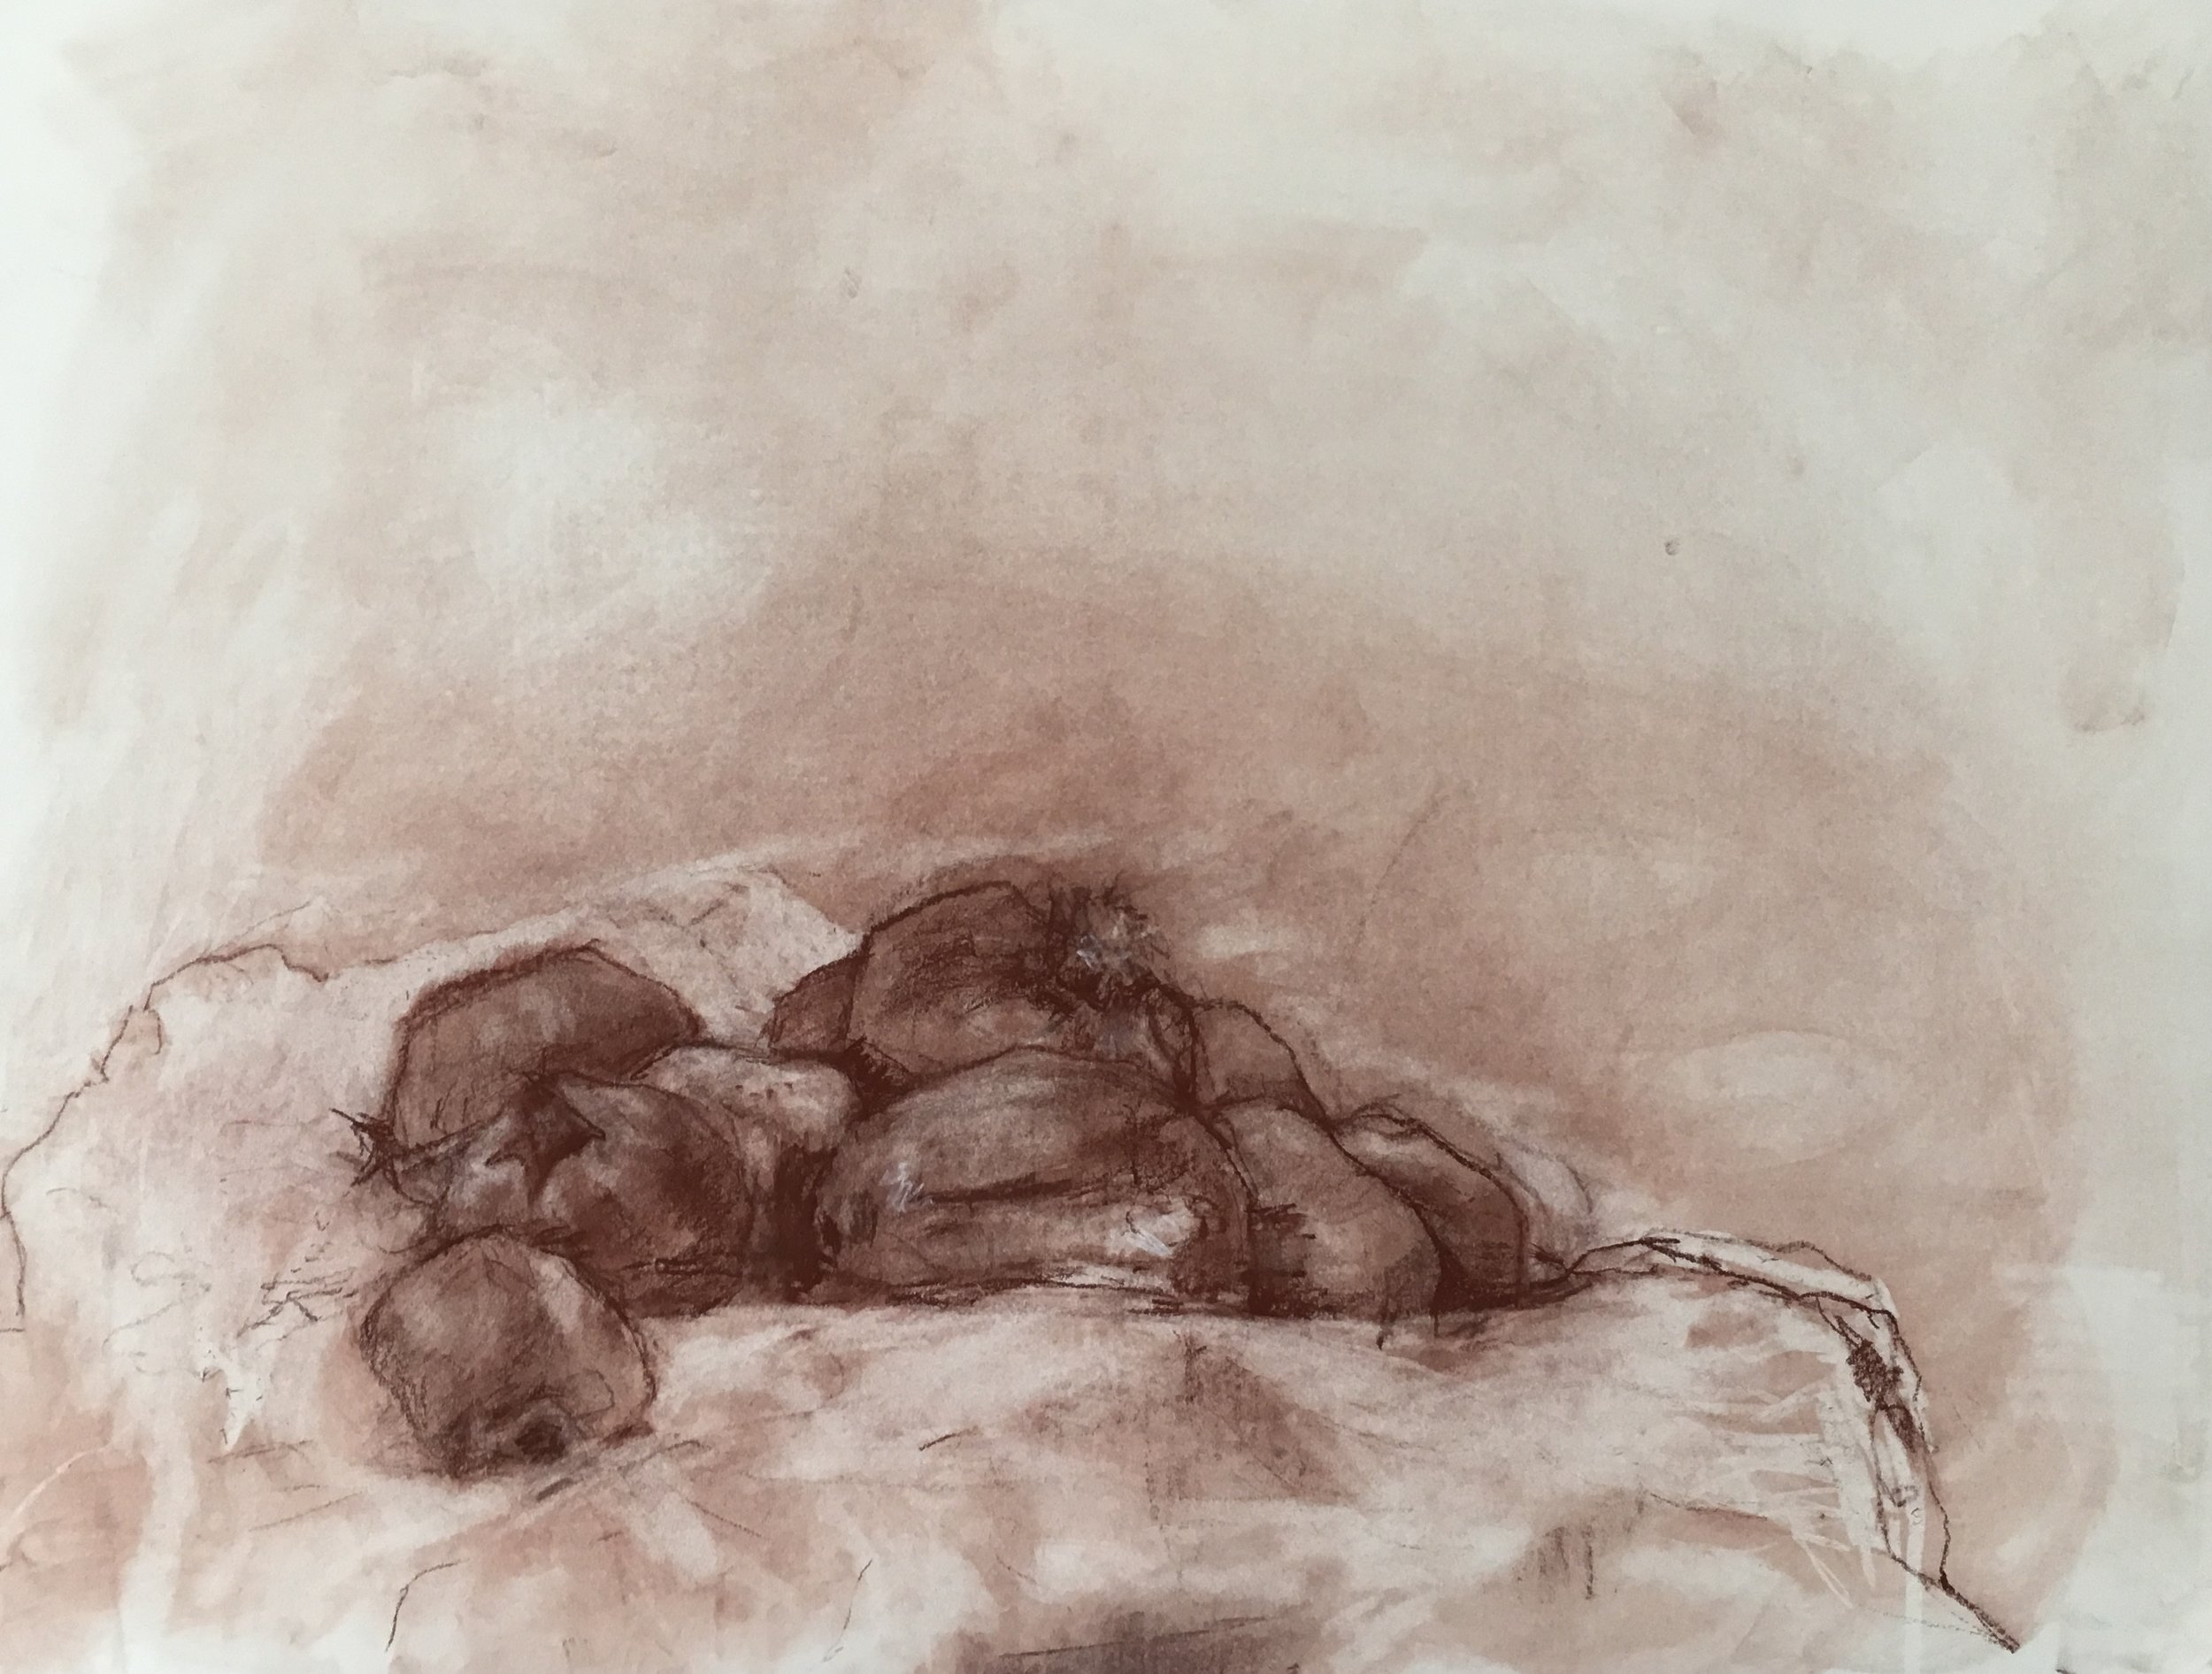 Pomegranates  conte crayon on cream drawing paper 24 x 18 inches 2019